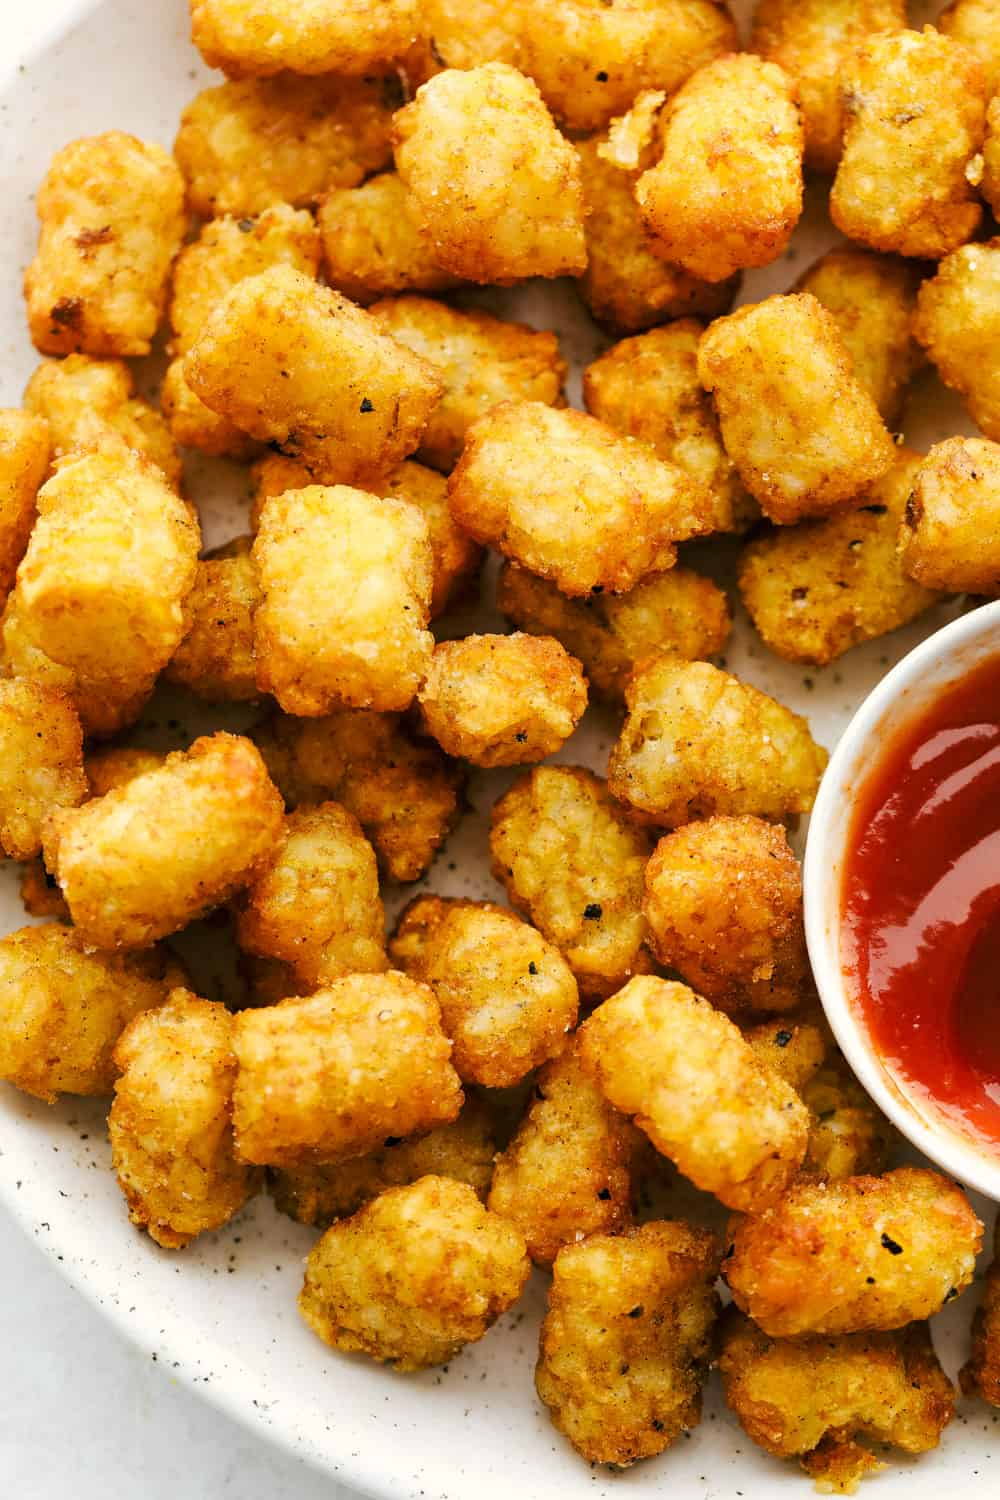 Perfect air fryer tater tots on a plate with ketchup.